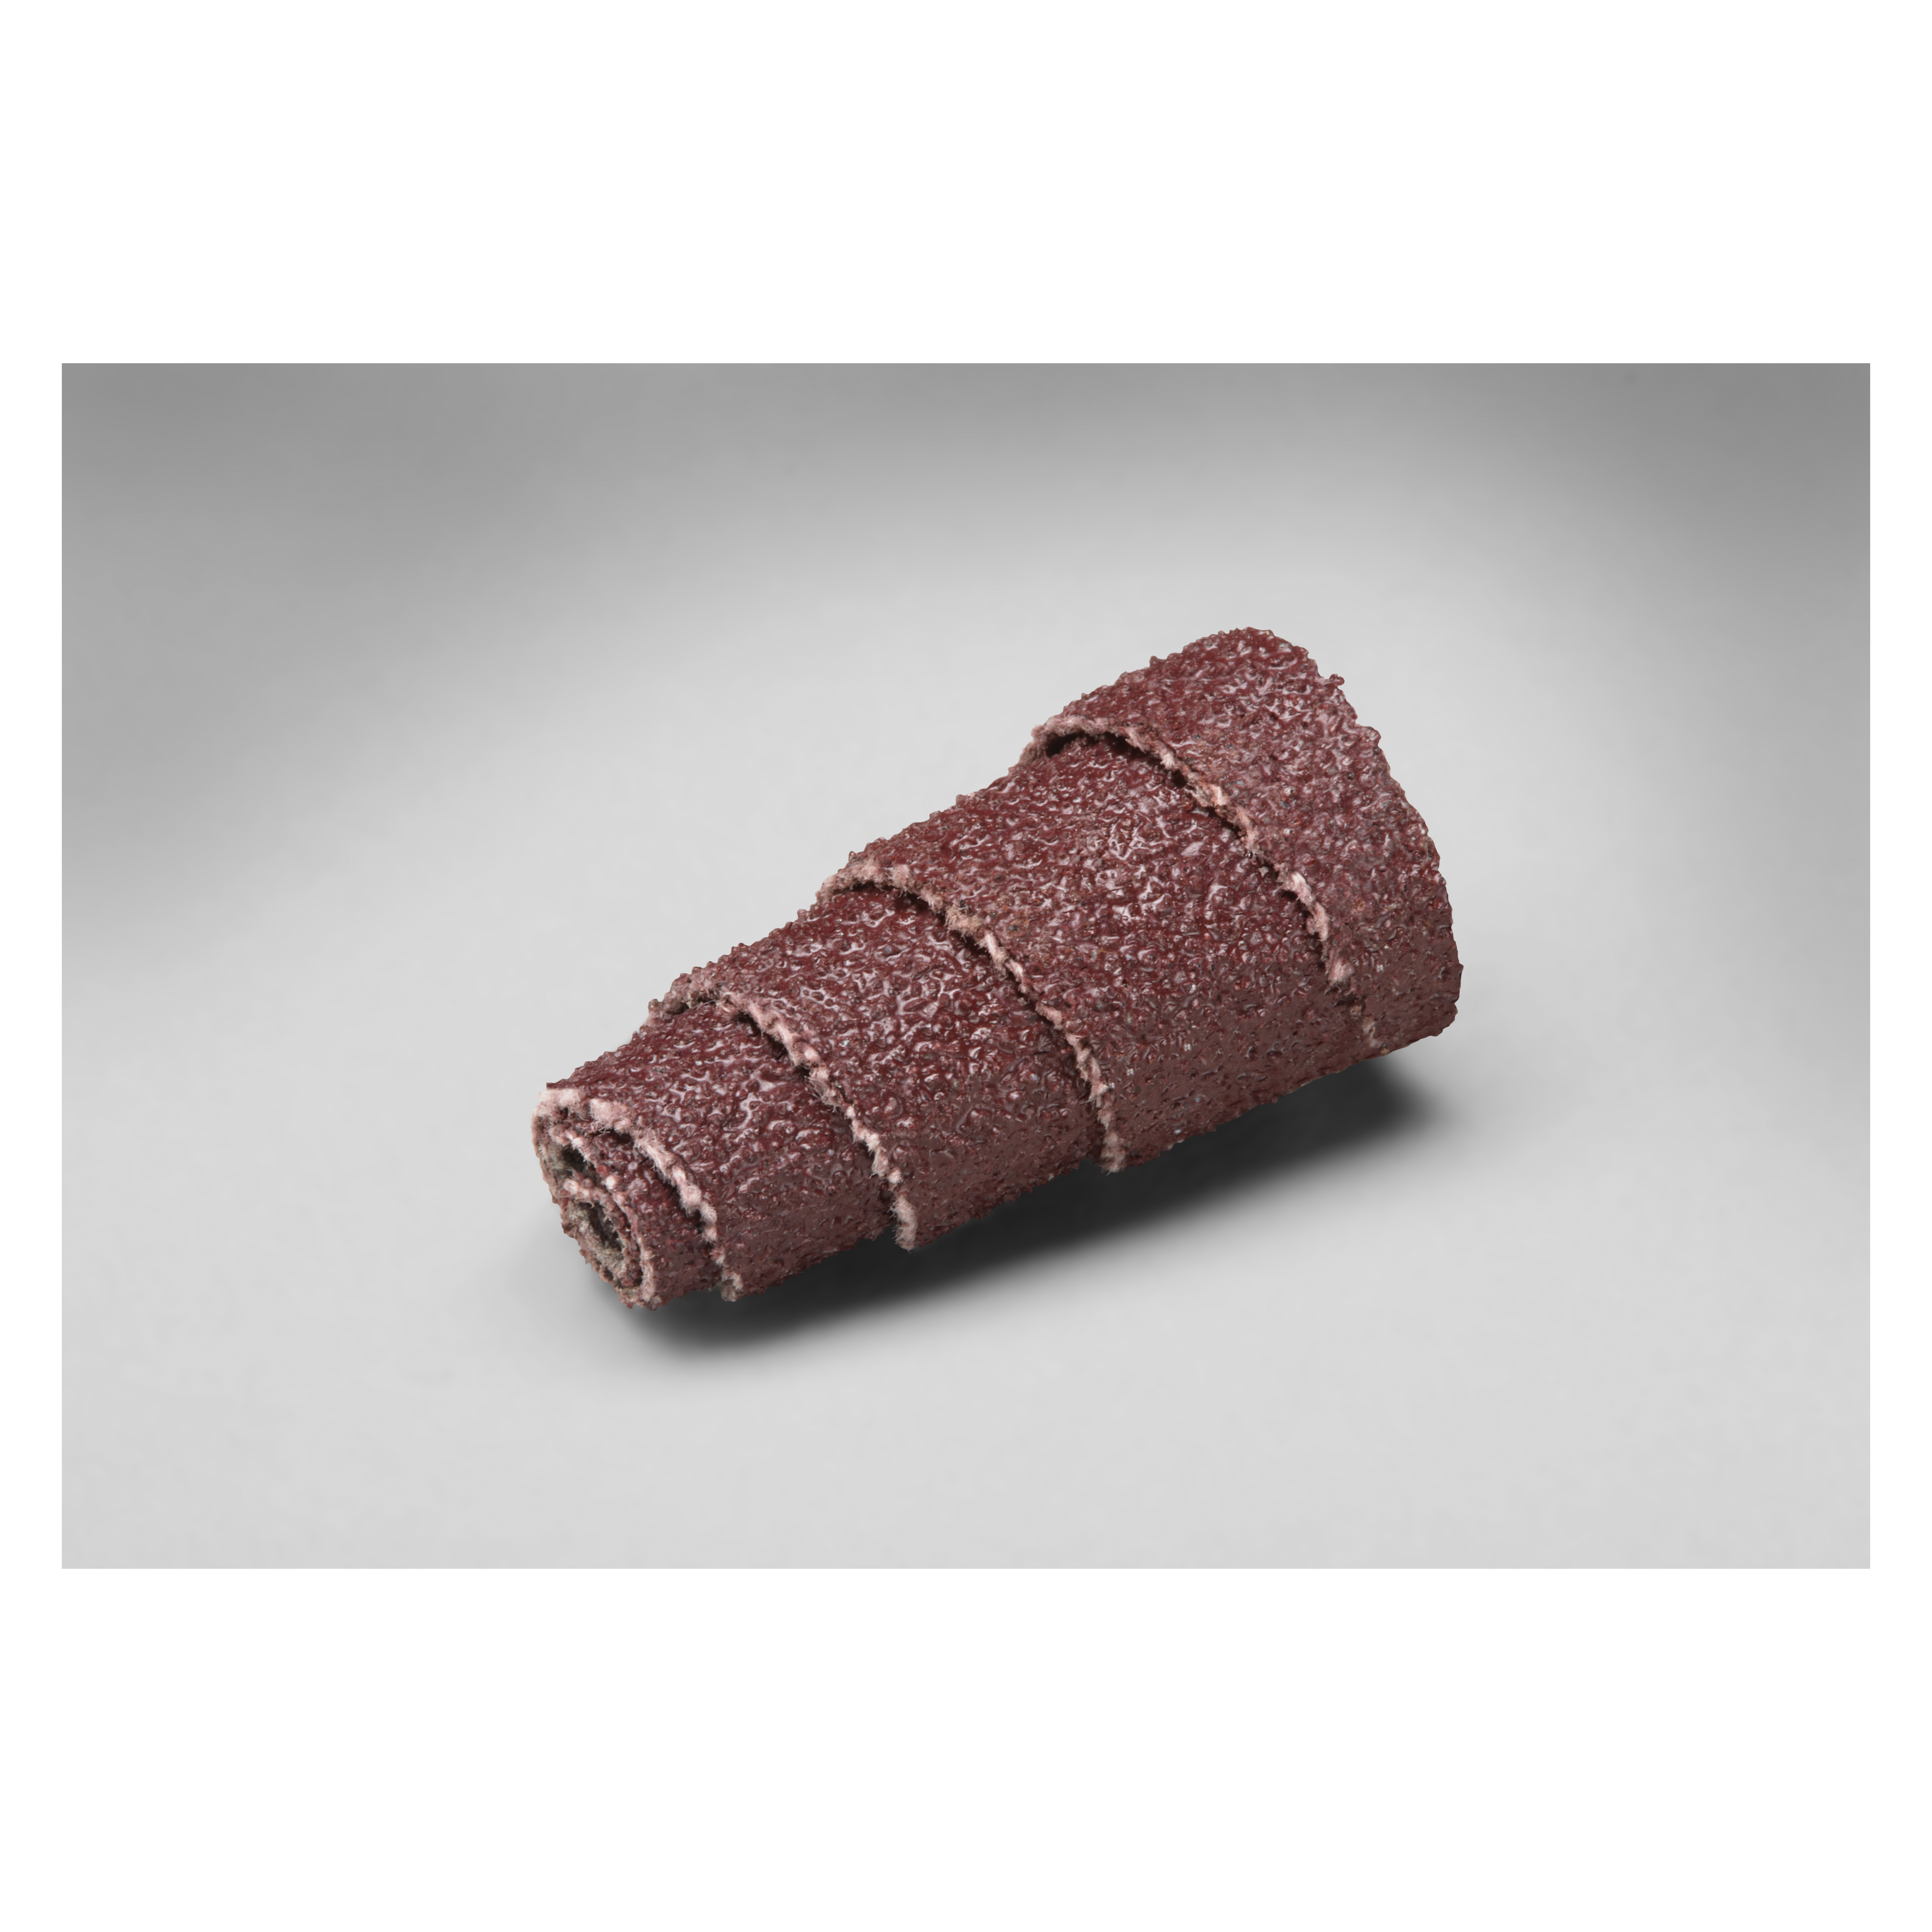 3M™ 051144-97257 341D Coated Full Tapered Coated Cartridge Roll, 1/2 in Dia x 1 in OAL, 1/8 in Dia Pilot Hole, 60 Grit, Aluminum Oxide Abrasive